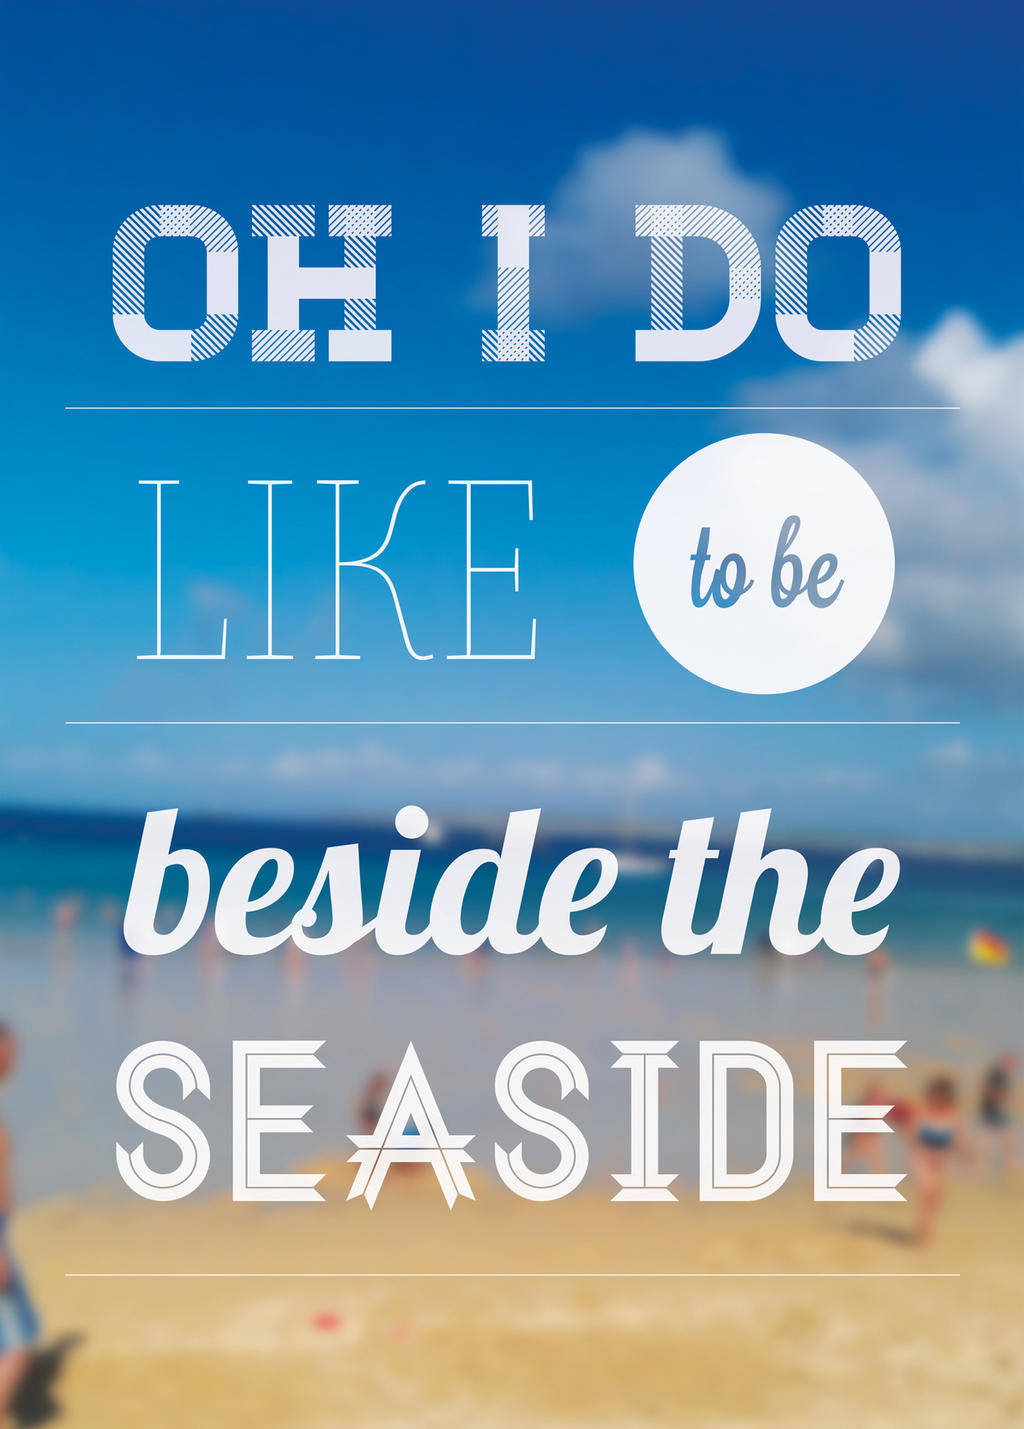 Oh I Do Like To Be Beside The Seaside by MyhwDesign